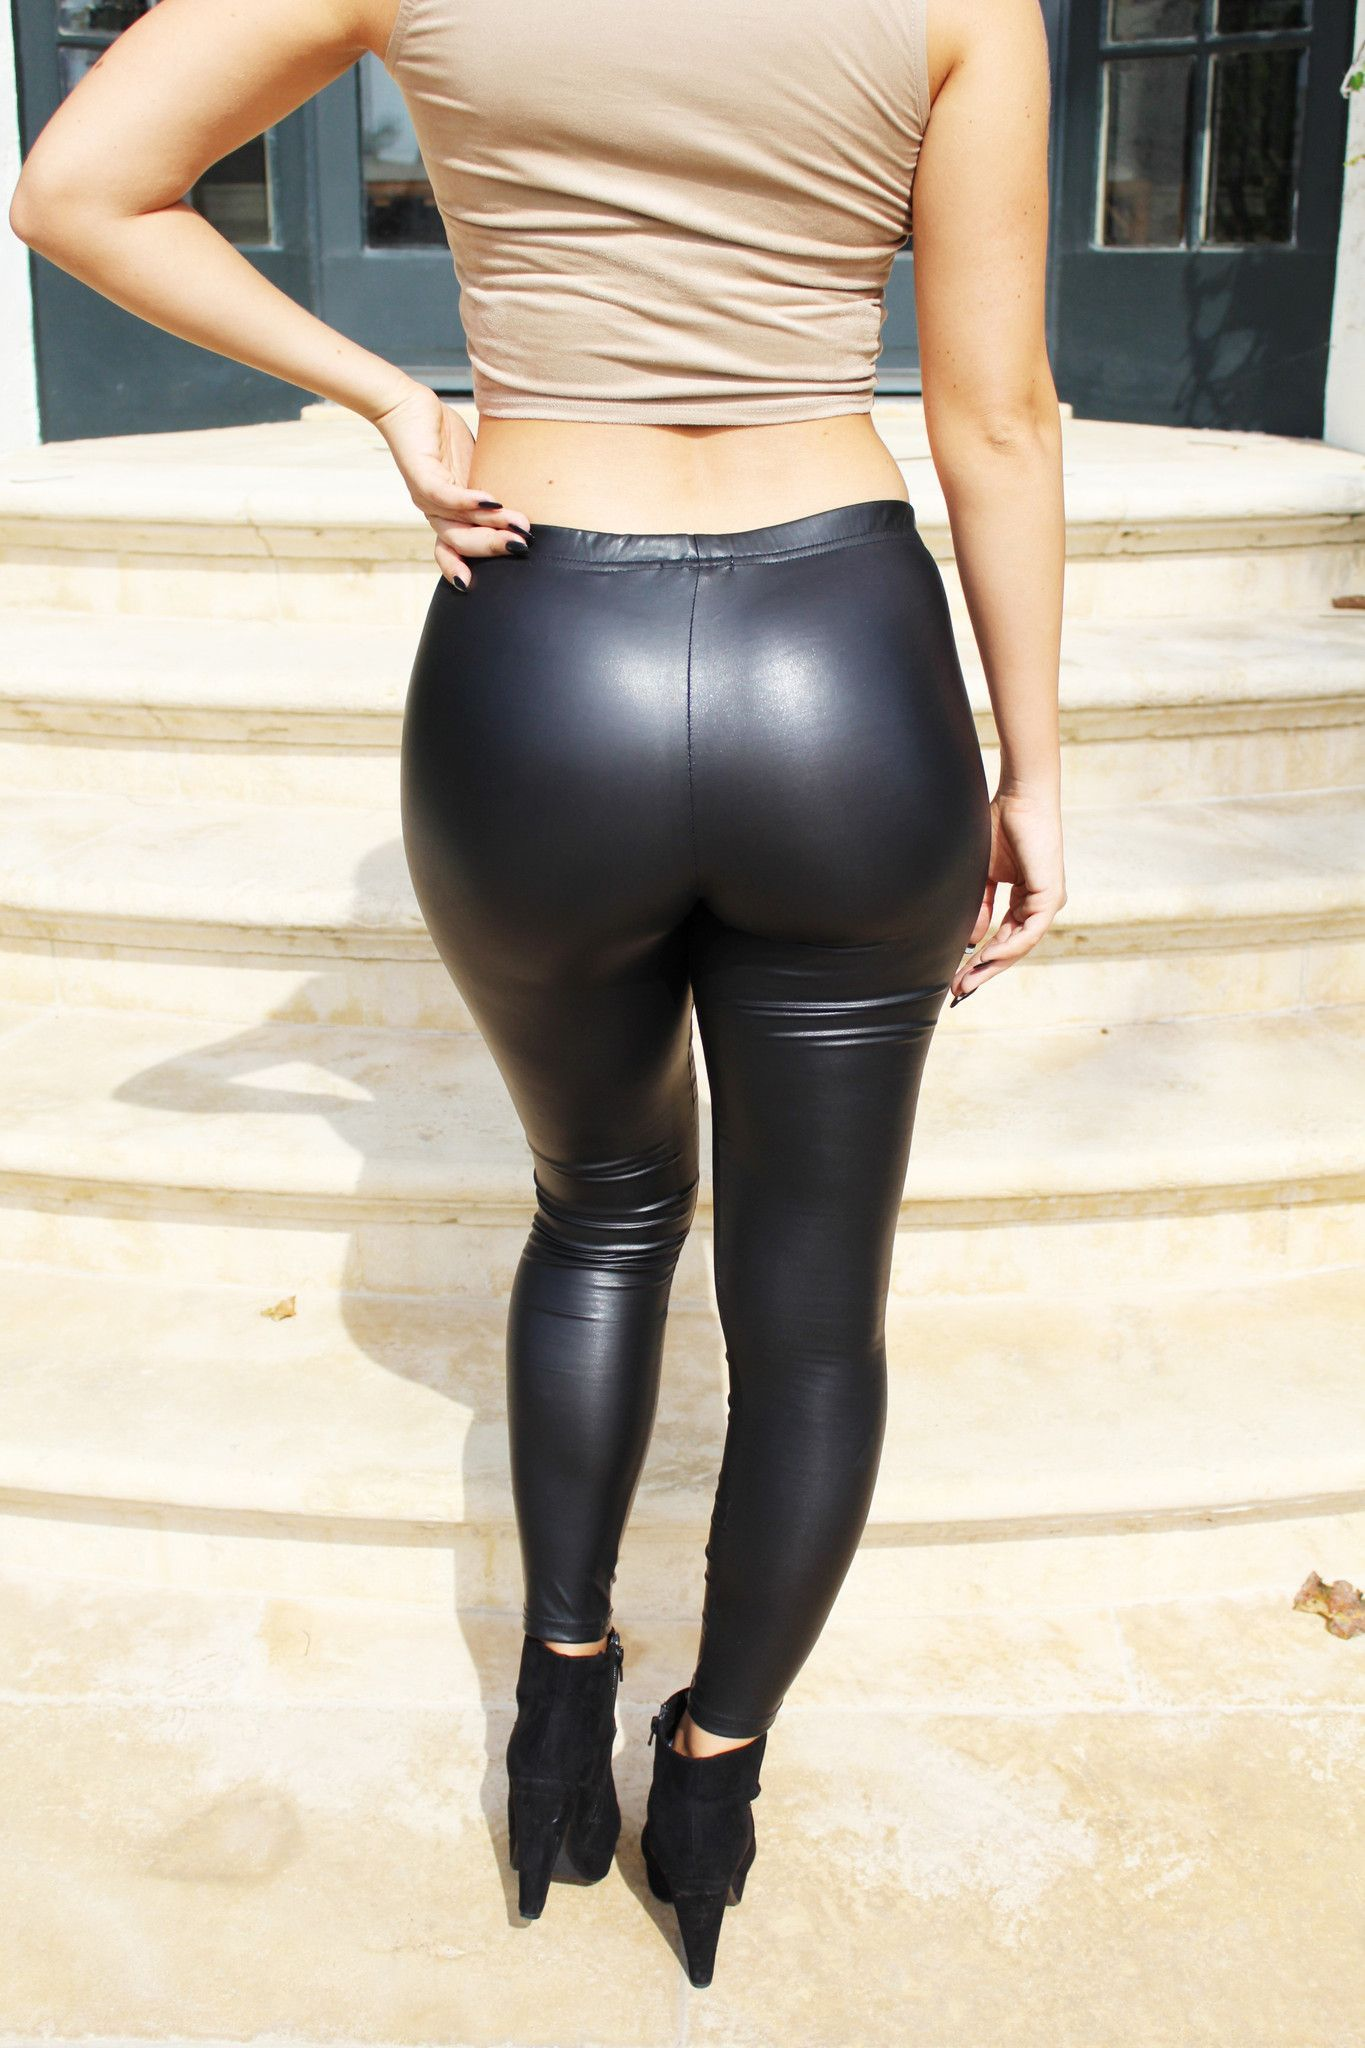 Big ass leather